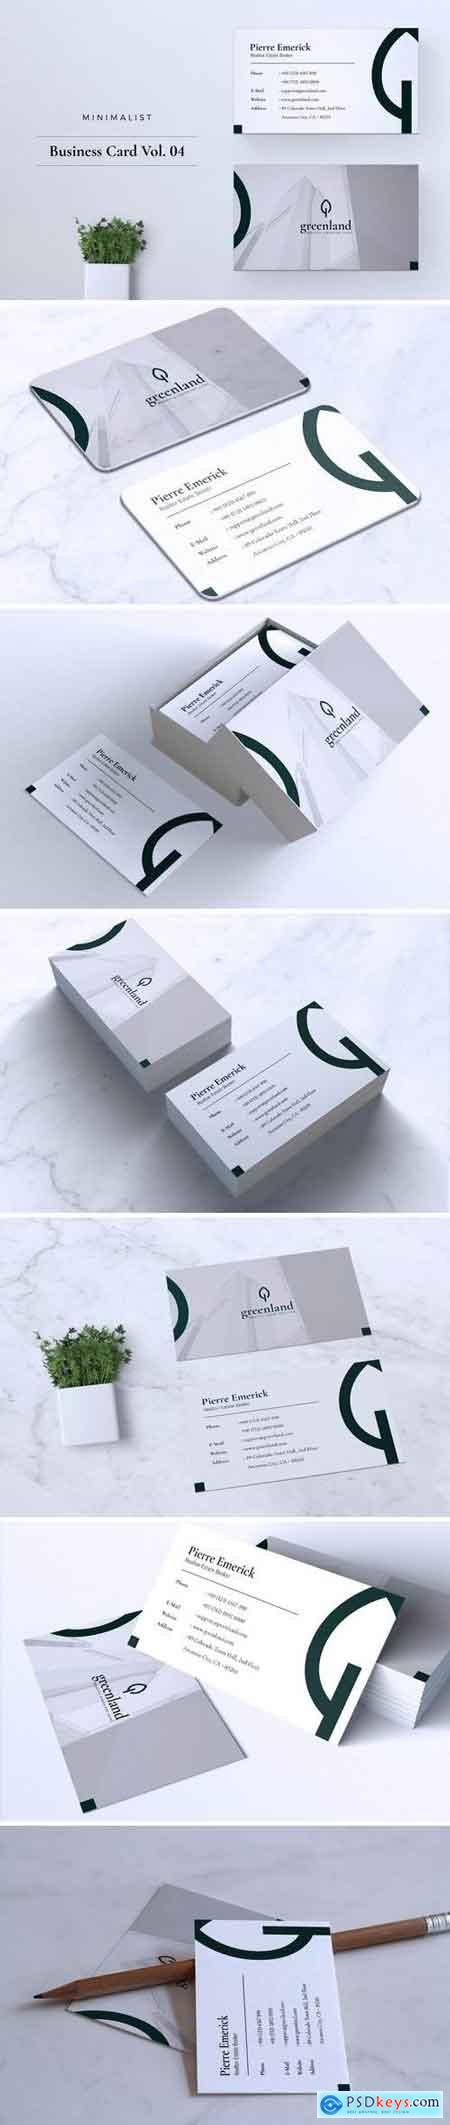 Minimalist Business Card Vol. 04